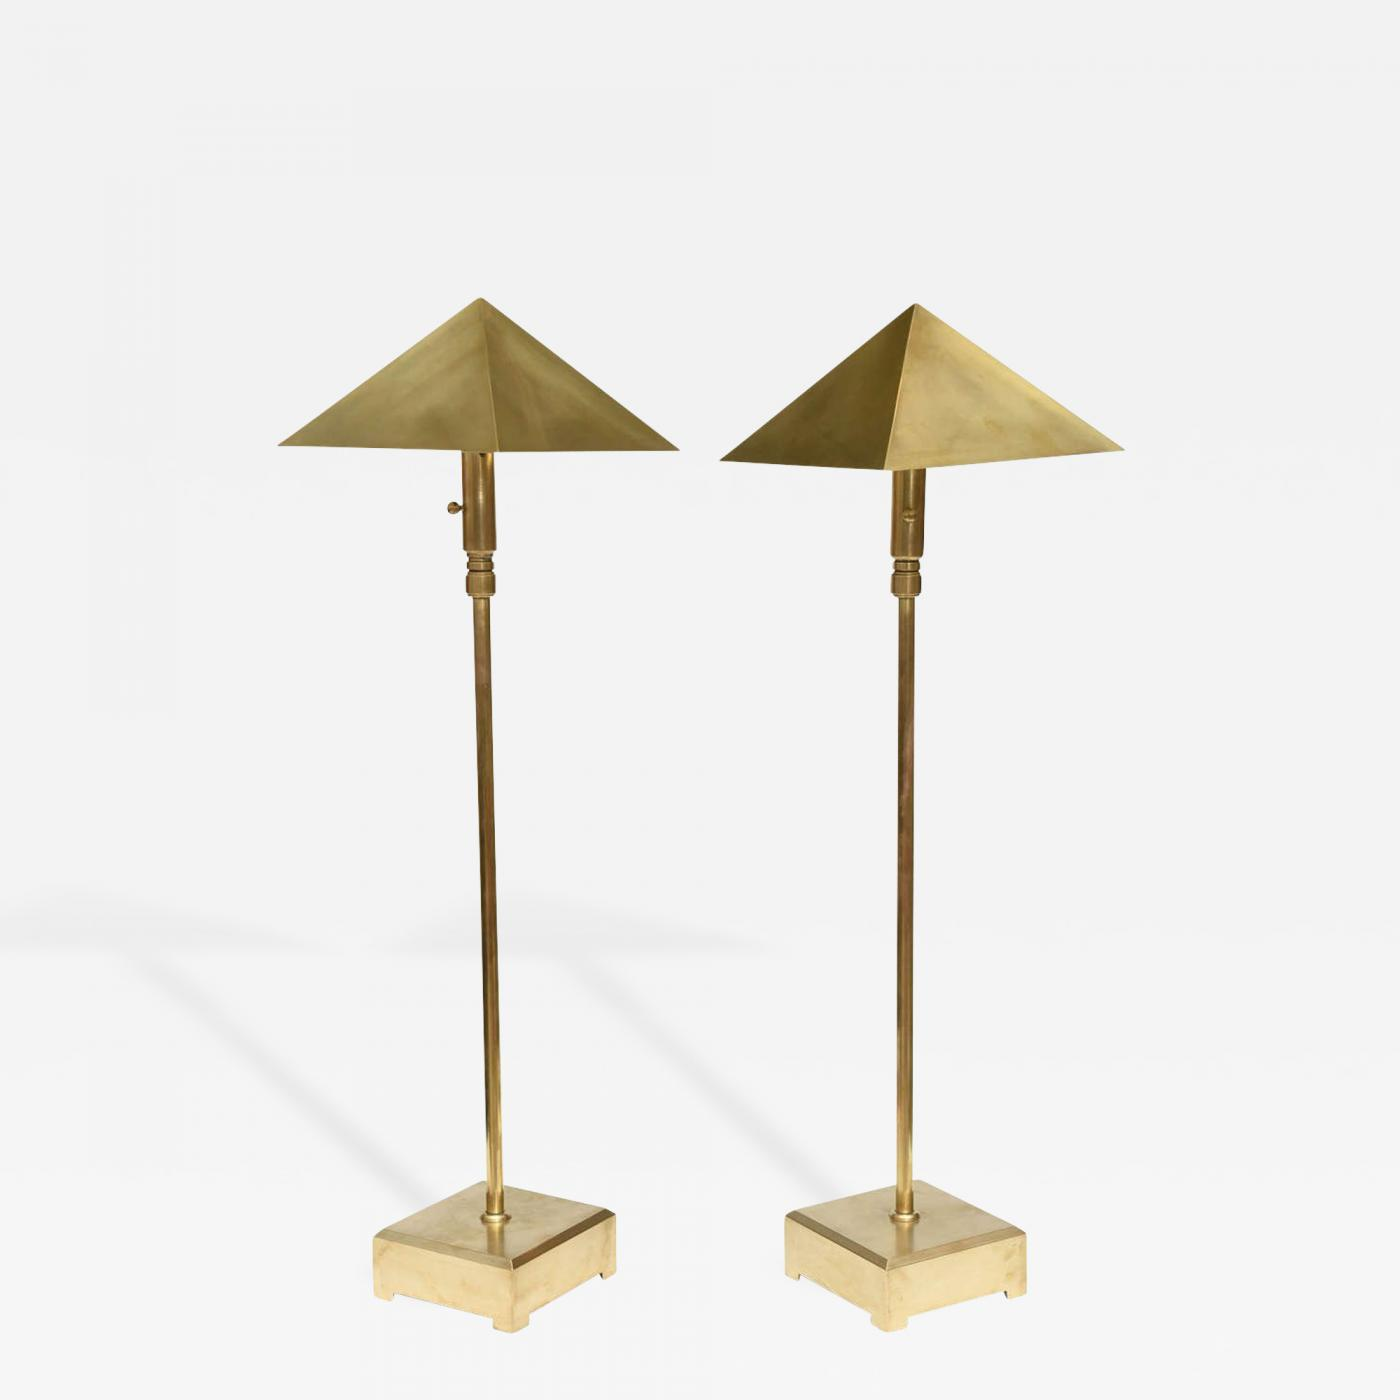 The Pyramidal Shade Above An Adjustable Pole To Extend Or Shorten The  Overall Length, On